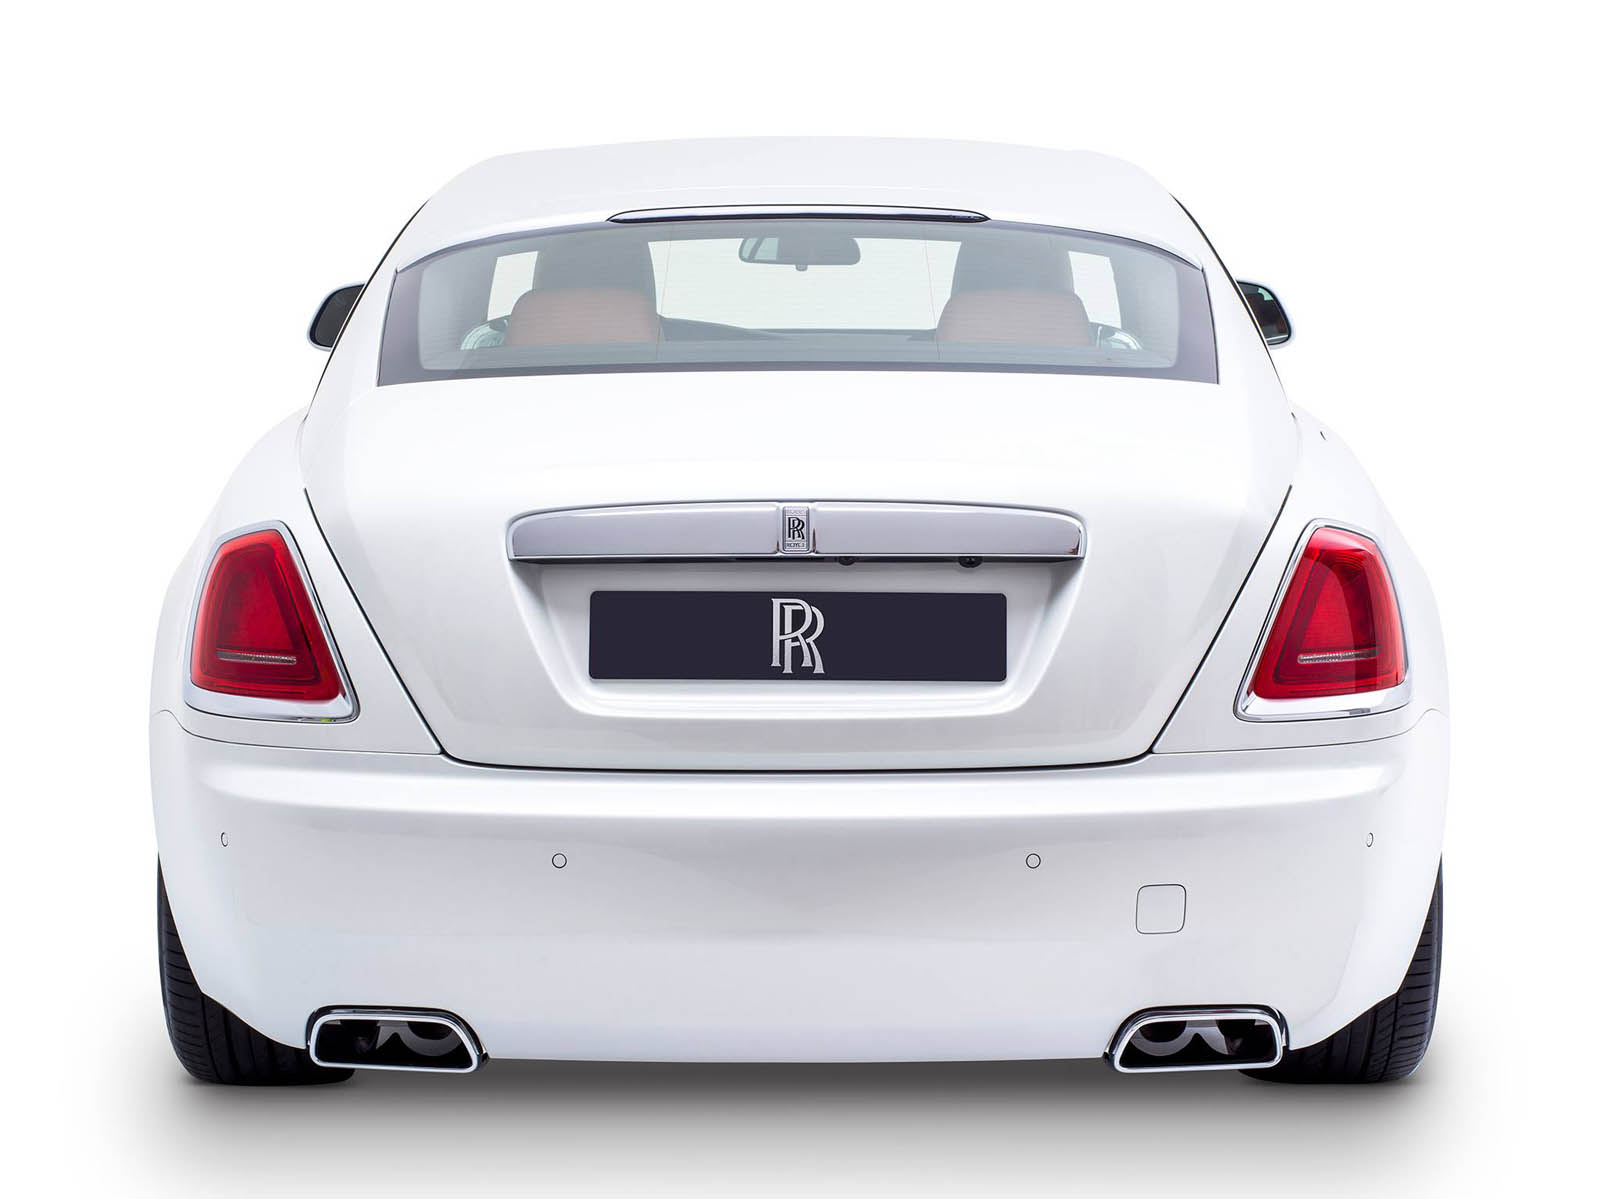 rolls-royce-Wraith-inspired-by-Falconry-14